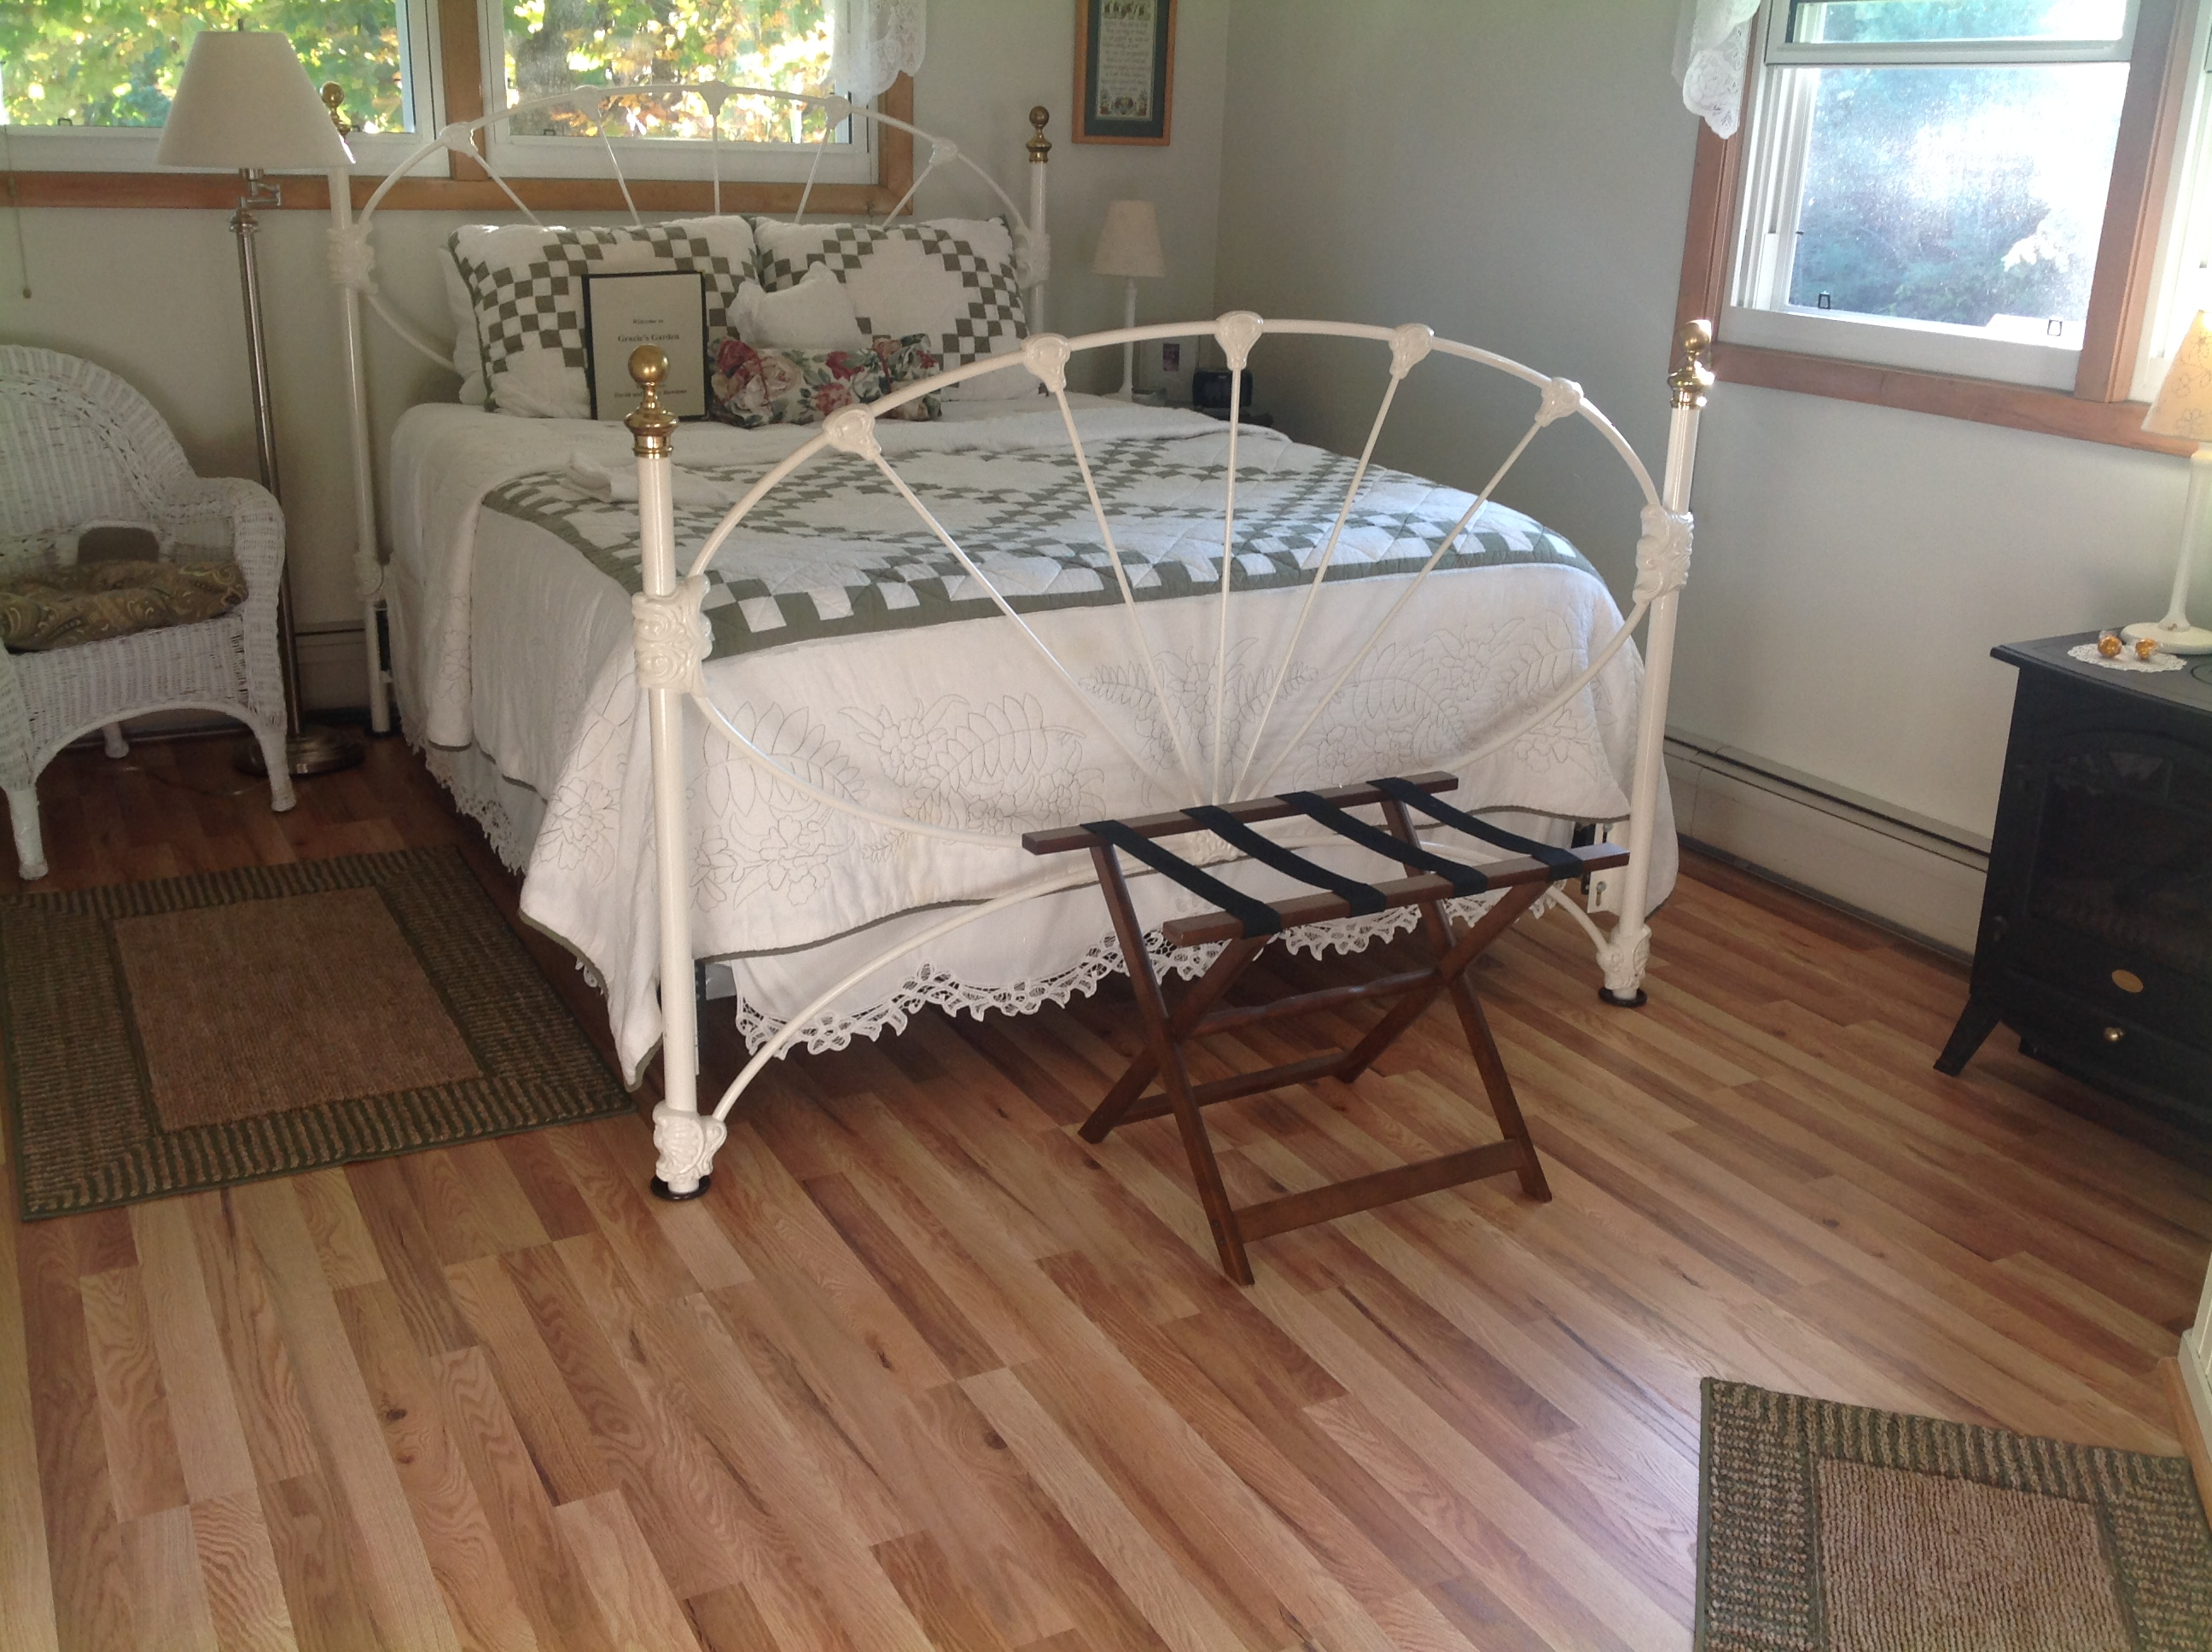 Bowman's Oak Hill Bed and Breakfast image 3